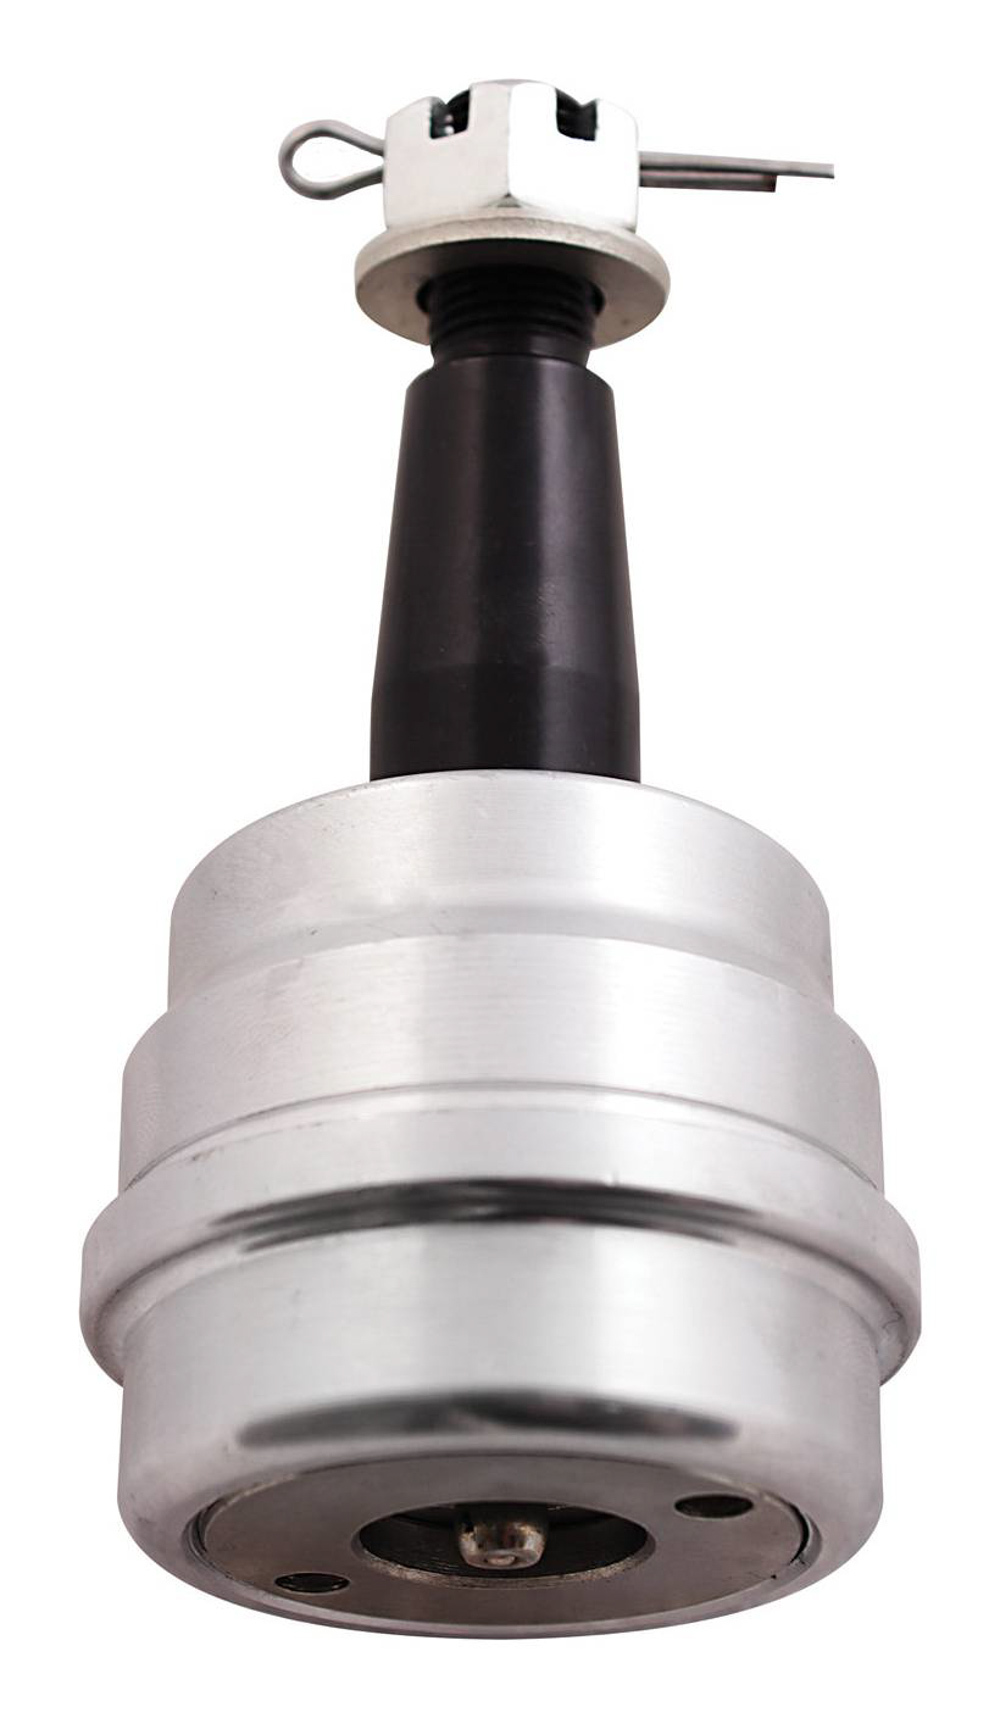 QA1 1210-112 Ball Joint, Greasable, Lower, Press-In, 2.000 in/ft Taper, 3.848 in Stud, 5/8-18 in Thread, Steel, Each